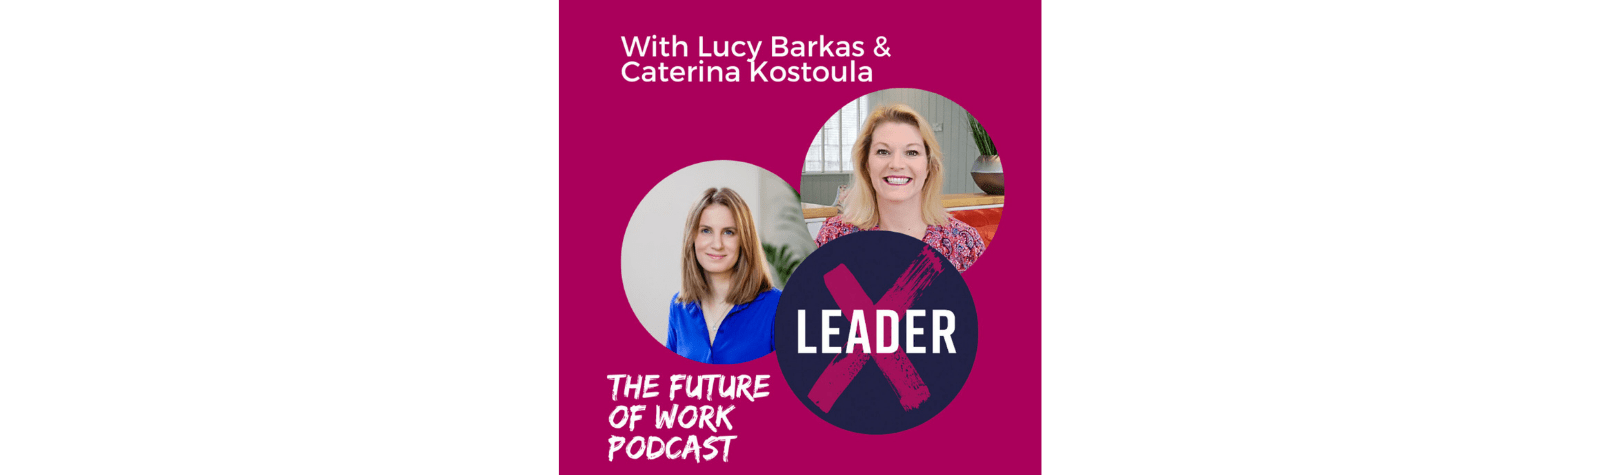 Leader X with Caterina Kostoula on Holding Successful Meetings